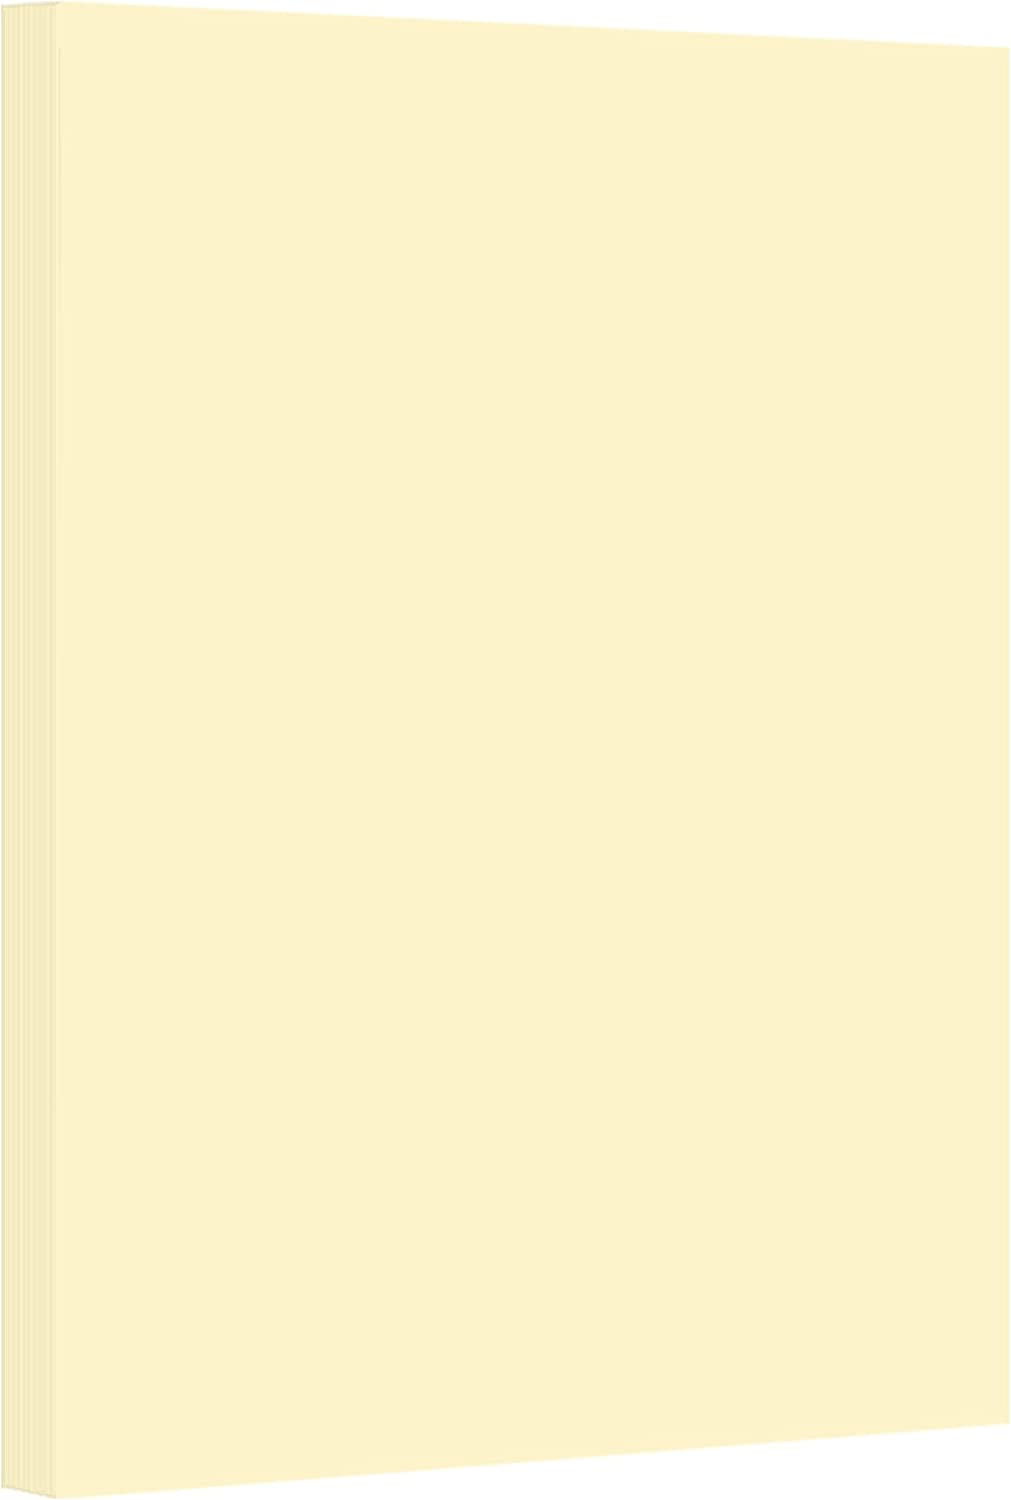 Ivory Pastel Color Card Stock Paper, 67lb Cover Medium Weight Cardstock, for Arts & Crafts, Coloring, Announcements, Stationary Printing at School, Office, Home | 8.5 x 11 | 50 Sheets Per Pack